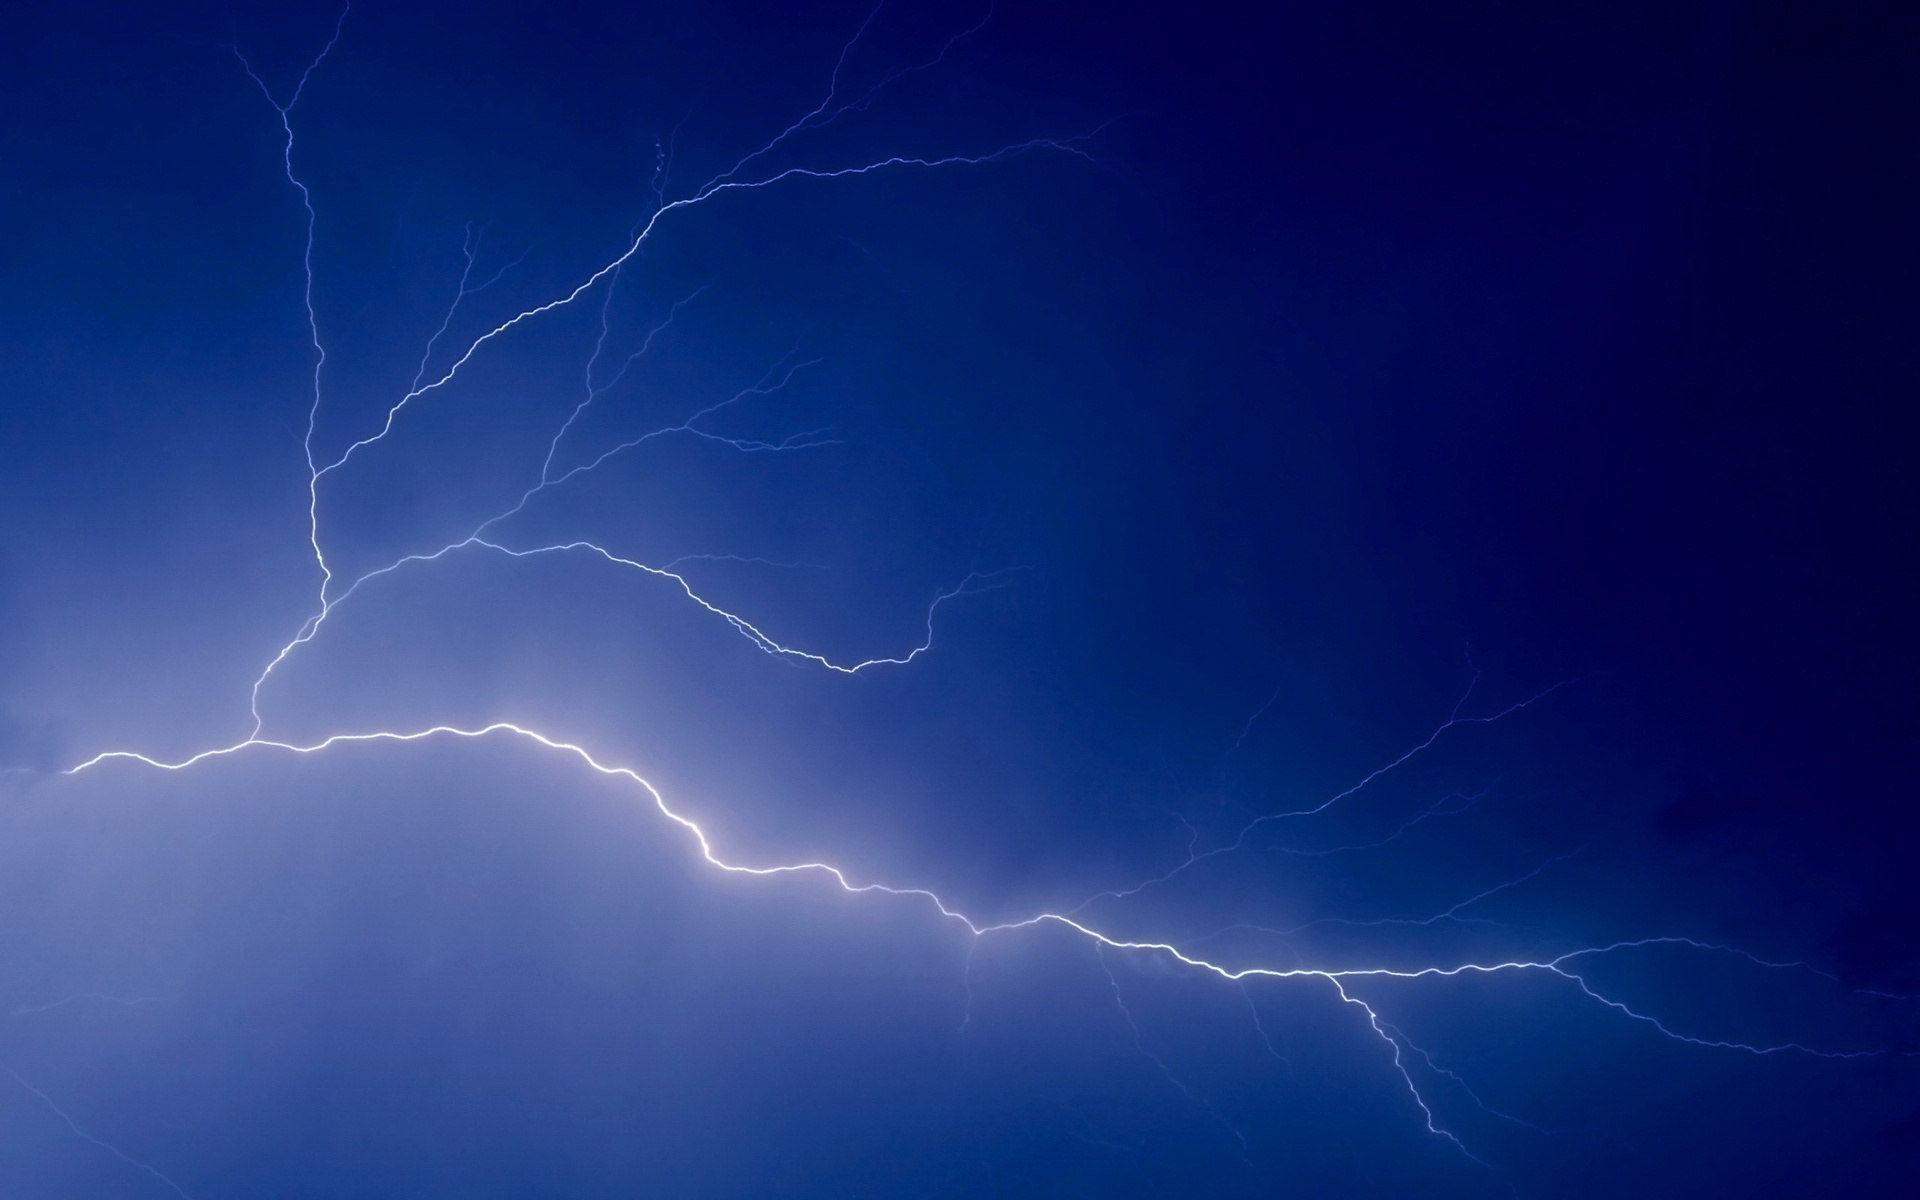 Blue Lightning wallpapers x Free mobile wallpapers